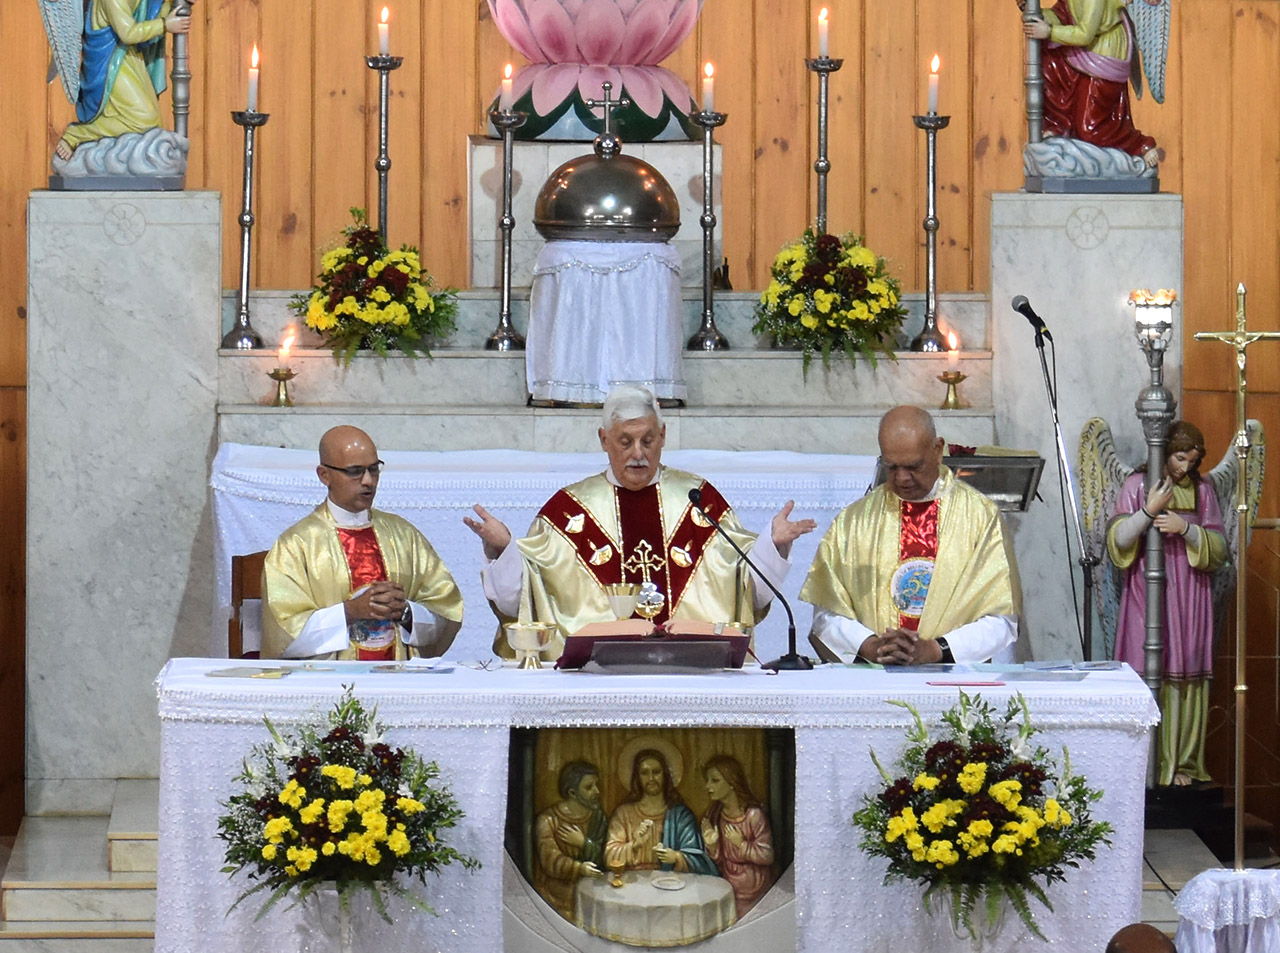 Homily of the Mass celebrated by Fr. General at Fatima Cathedral, Belagavi – 28 Feb 2019